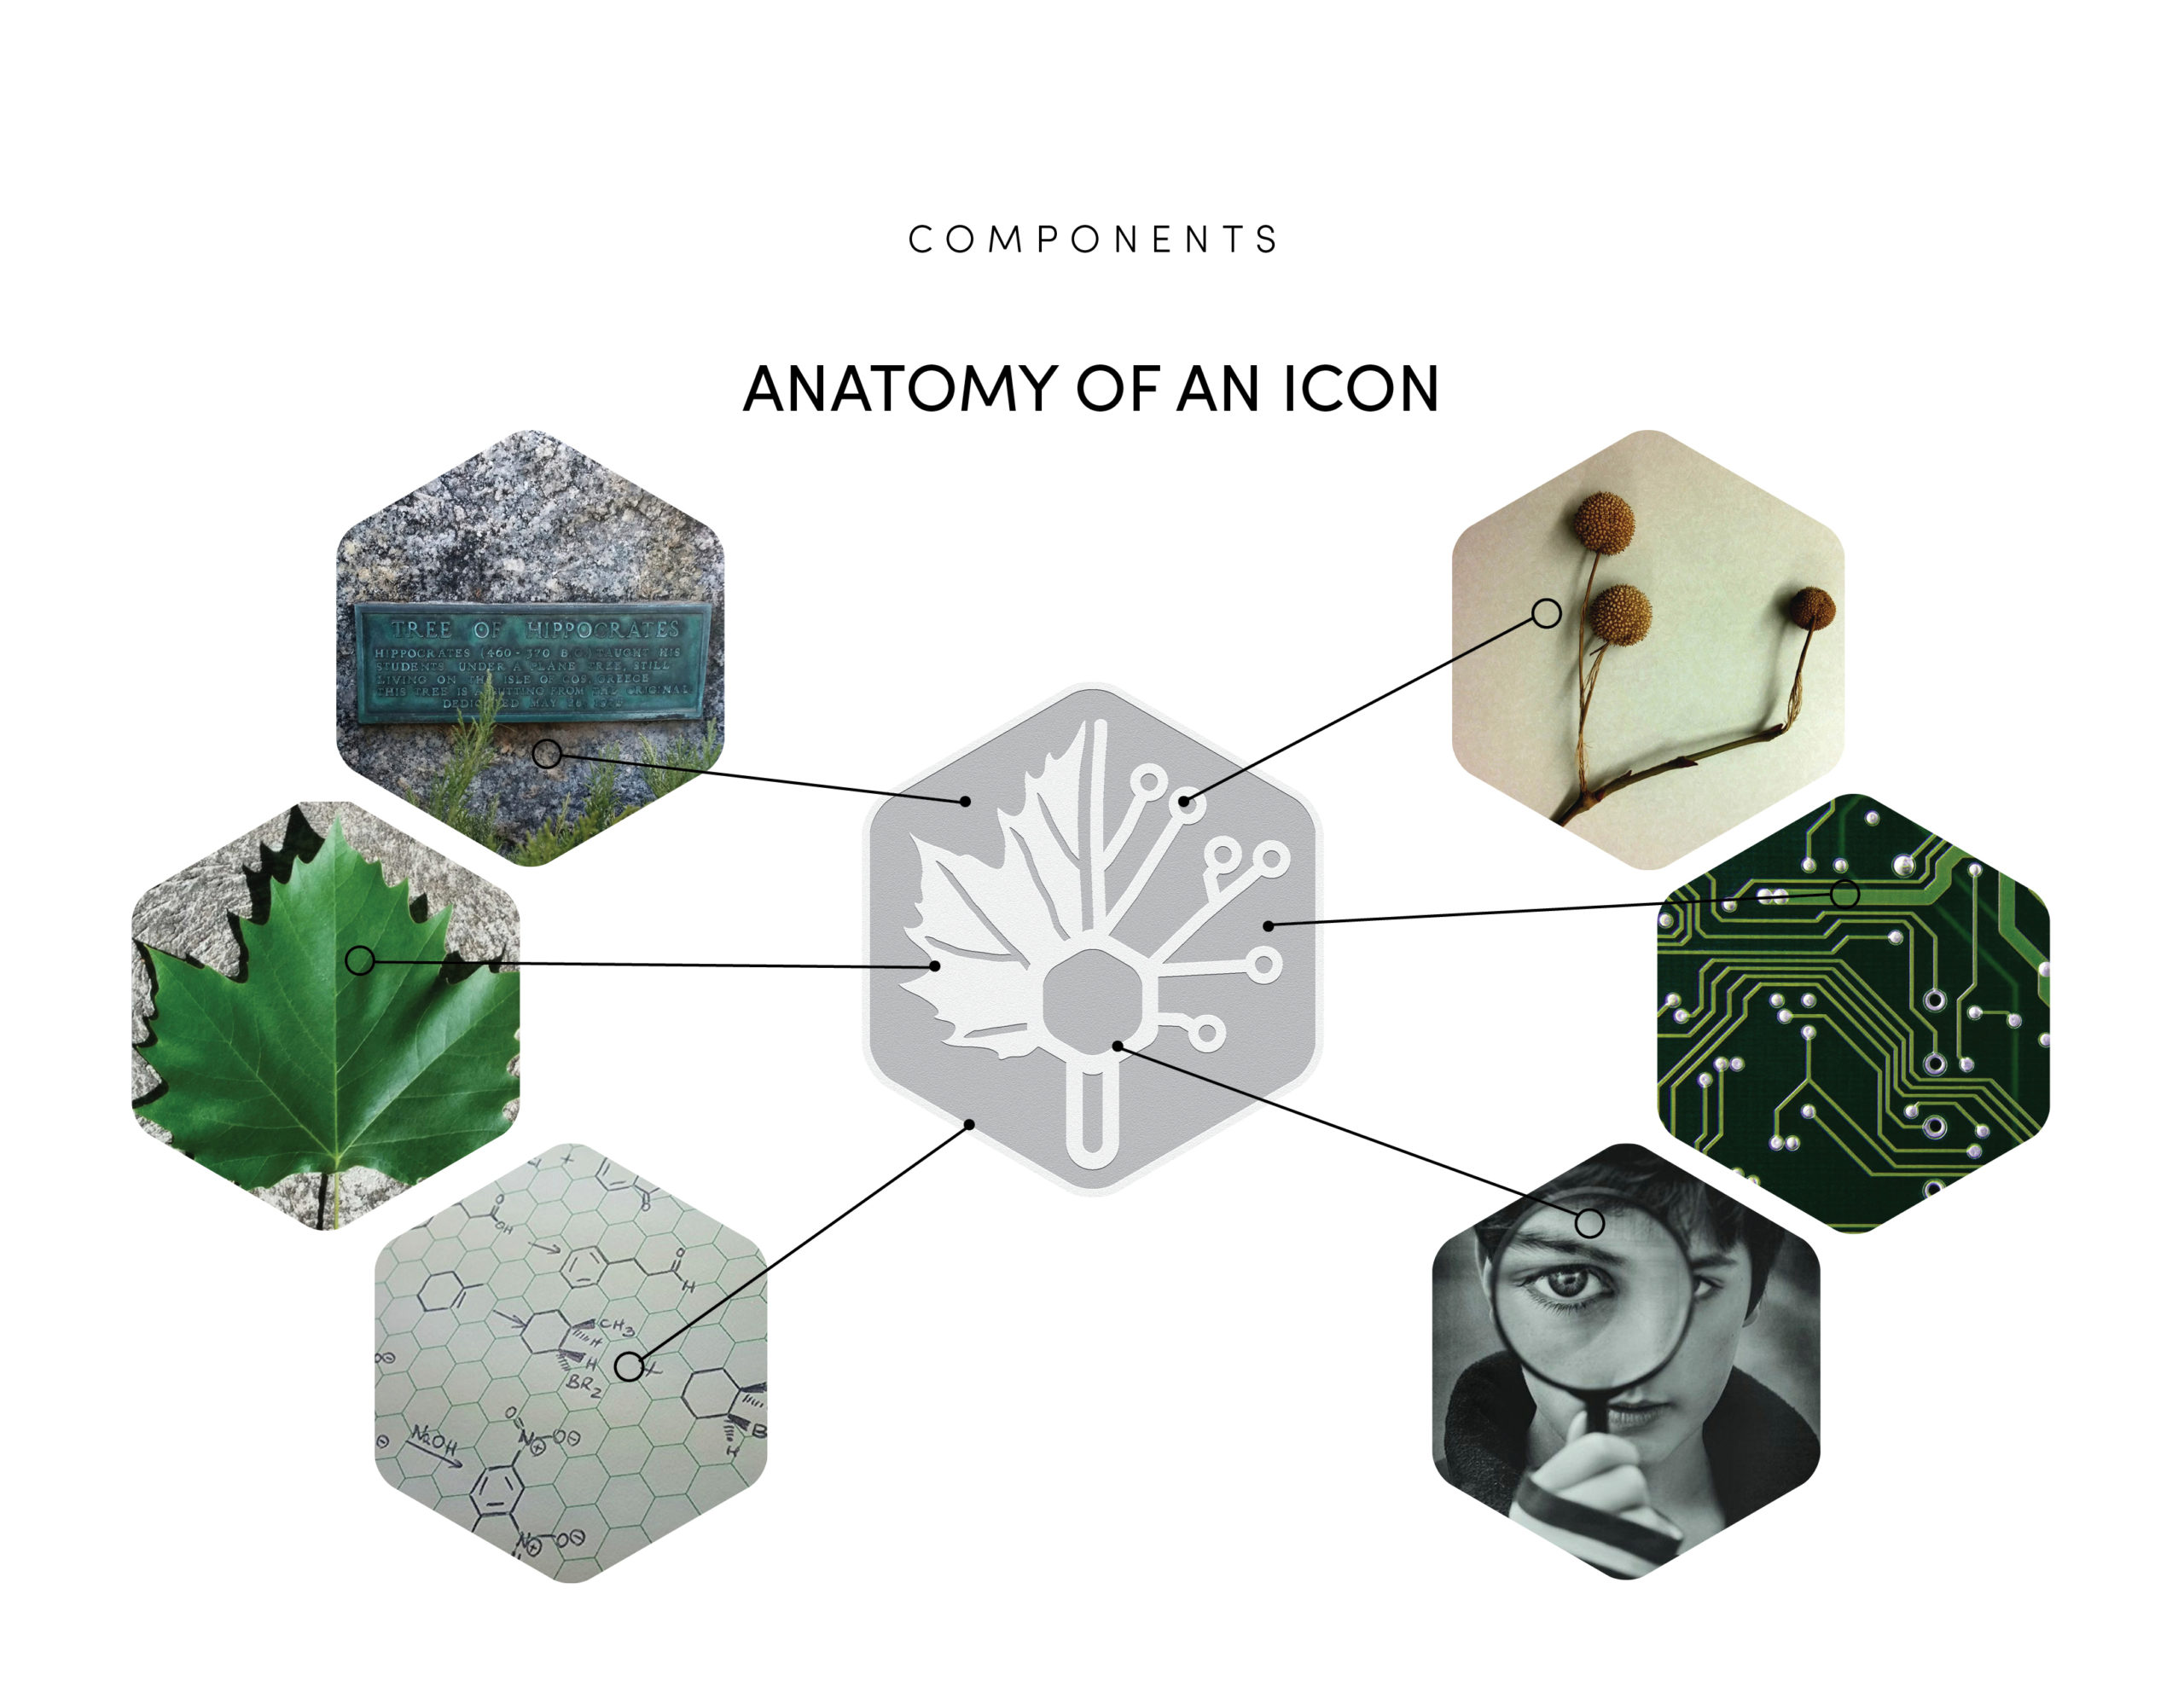 Anatomy of an icon